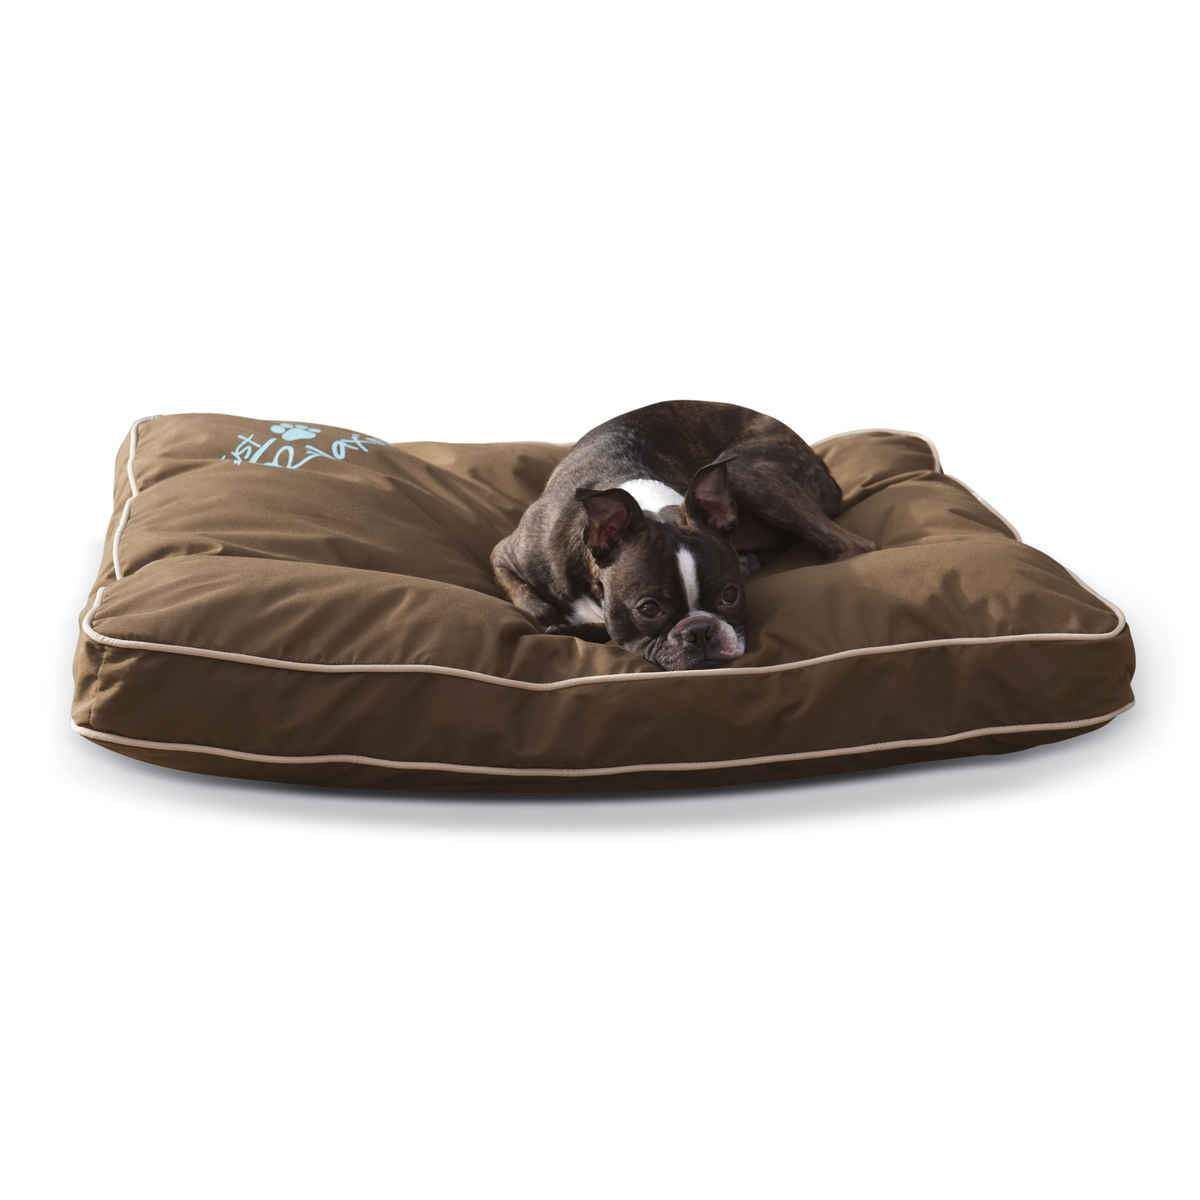 Kh Pet Products Just Relaxin Indoor Outdoor Pet Bed Medium Chocolate 28 X